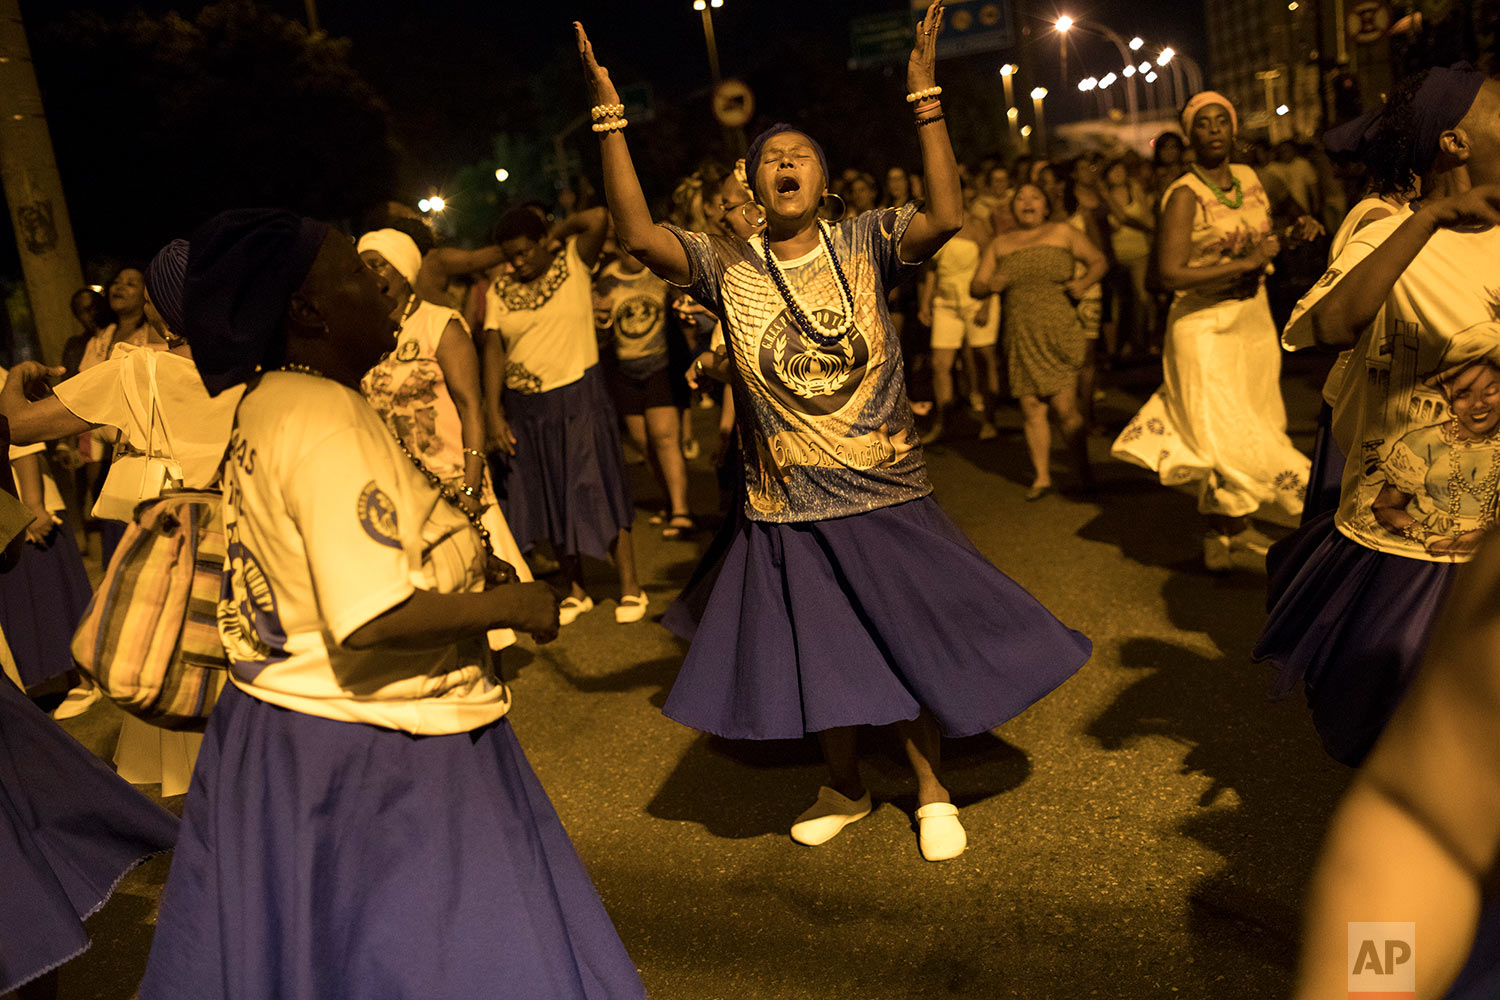 """In this Jan. 22, 2018 photo, the Paraiso do Tuiuti samba school rehearse their dances and songs that make reference to Brazil's history with slavery, in the streets of Rio de Janeiro, Brazil. Leaders of the samba group see many instances of what they consider """"modern-day slavery"""" in Latin America's largest nation. (AP Photo/Leo Correa)"""